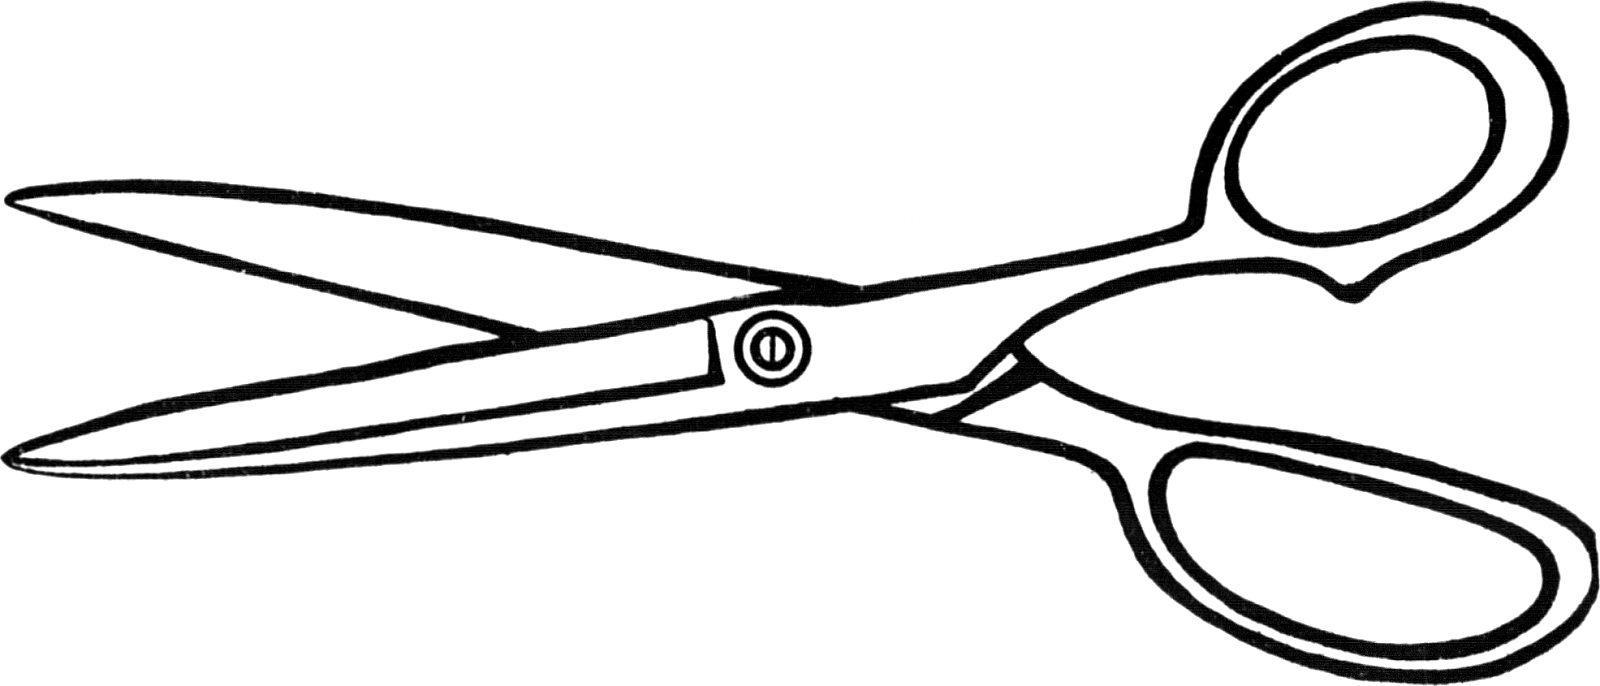 Shears clipart use. Hair scissors black and